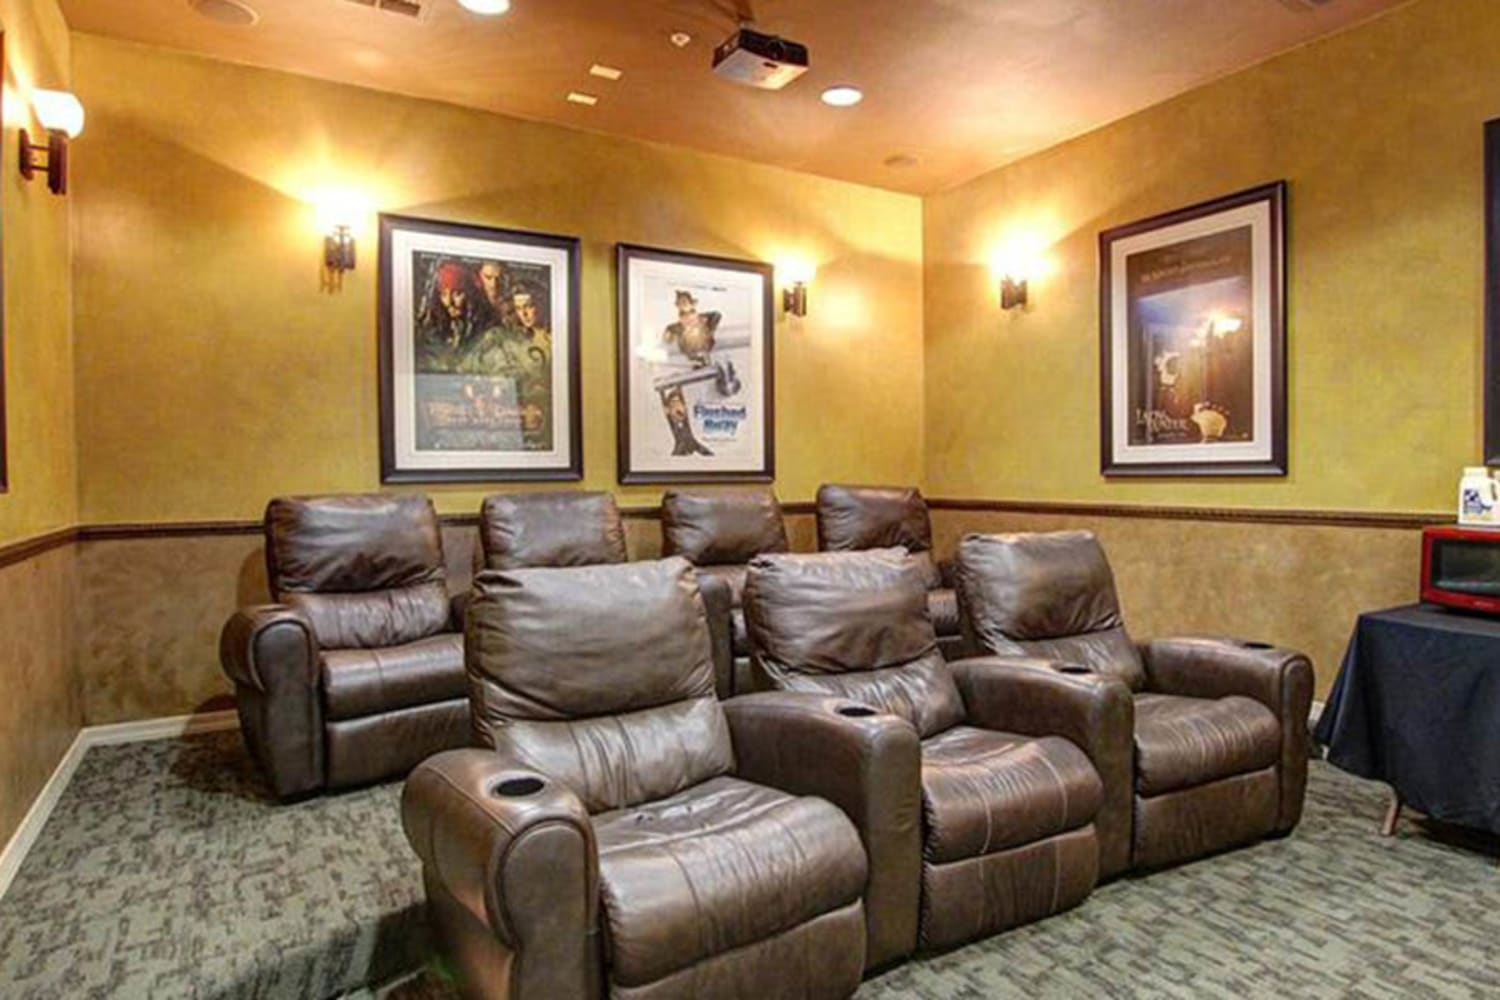 Enjoy having an onsite movie theater at Dobson 2222 in Chandler, Arizona